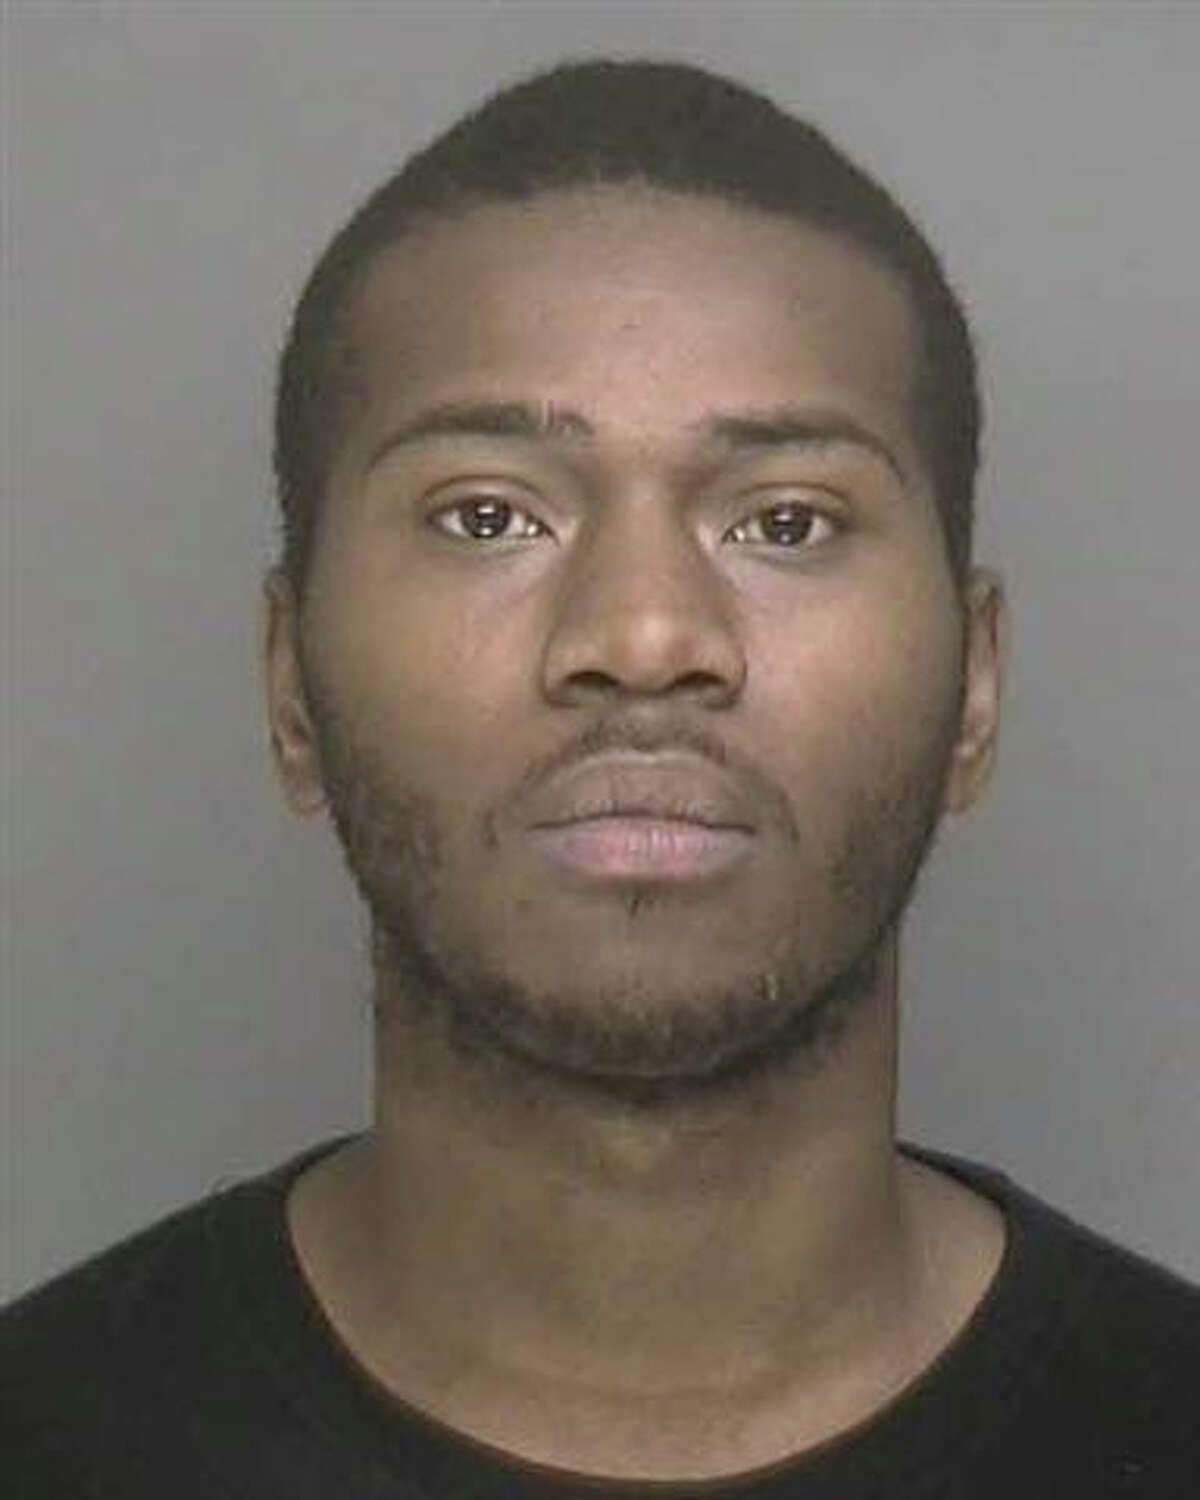 Donnell Williams, 22, was charged with killing a dog in Bridgeport and police said they found guns and drugs inside his apartment.